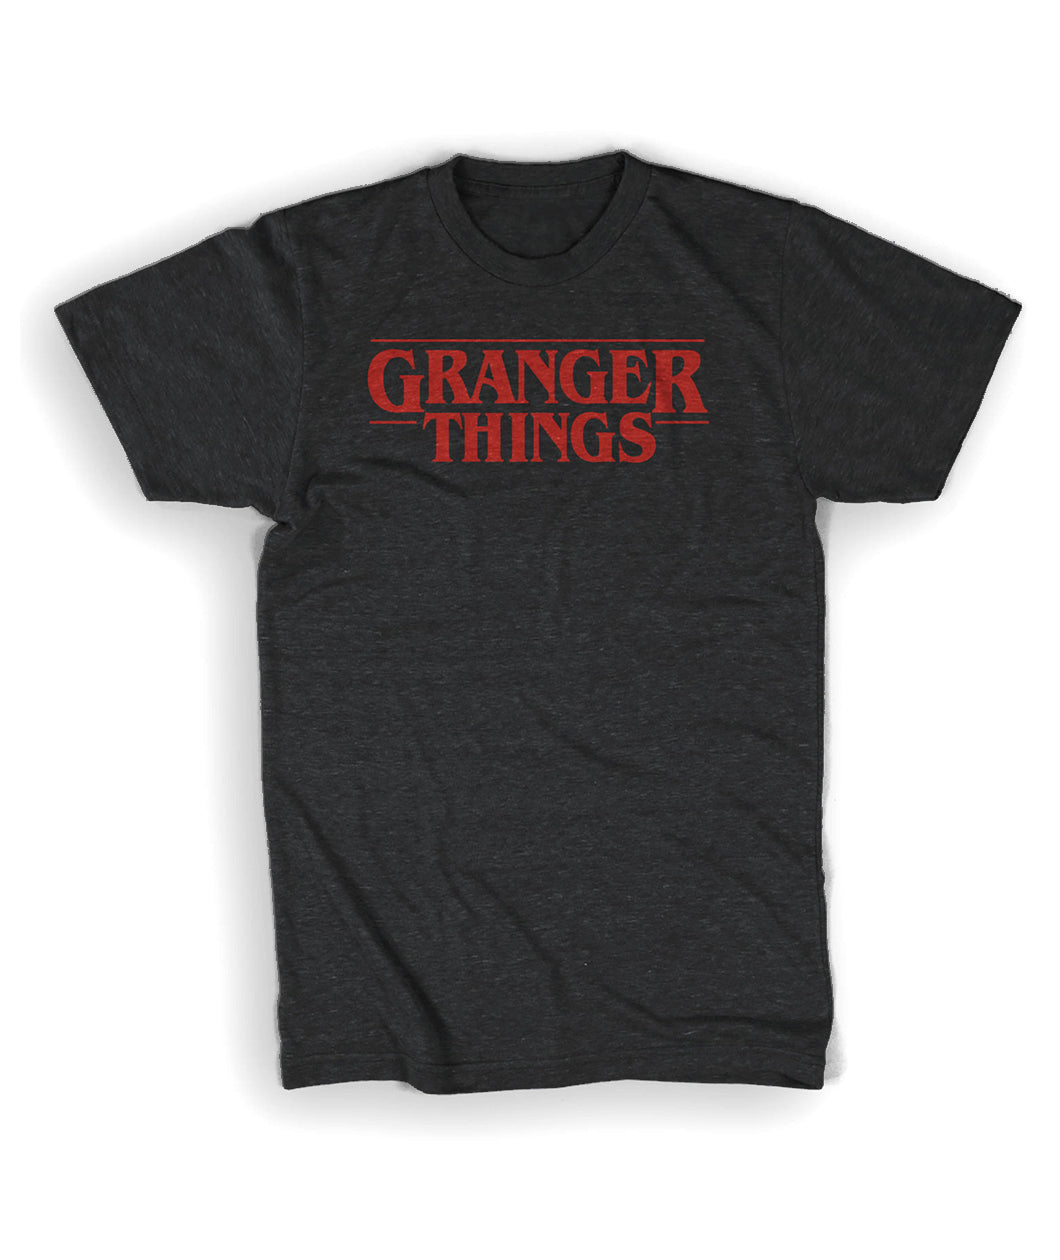 Granger Things Shirt